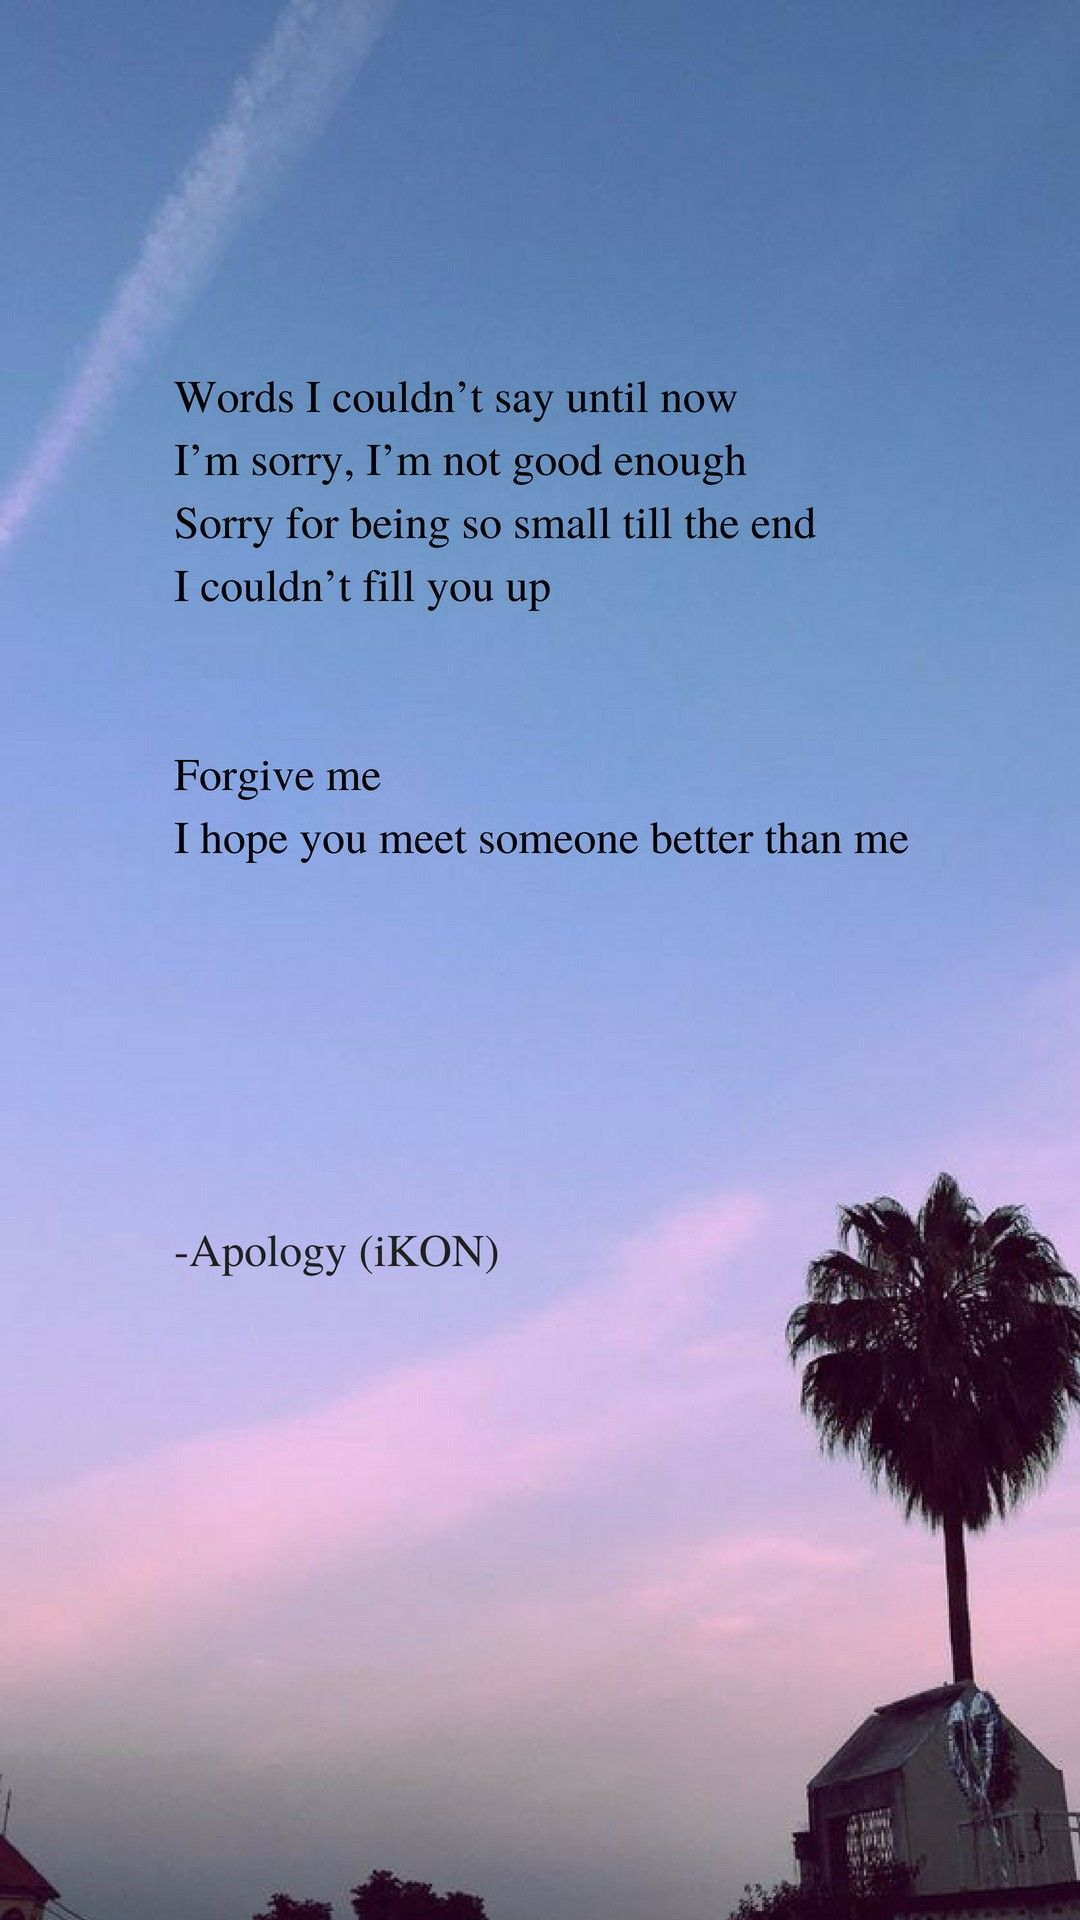 Apology By Ikon Lyrics Wallpaper Di 2019 Kutipan Lagu